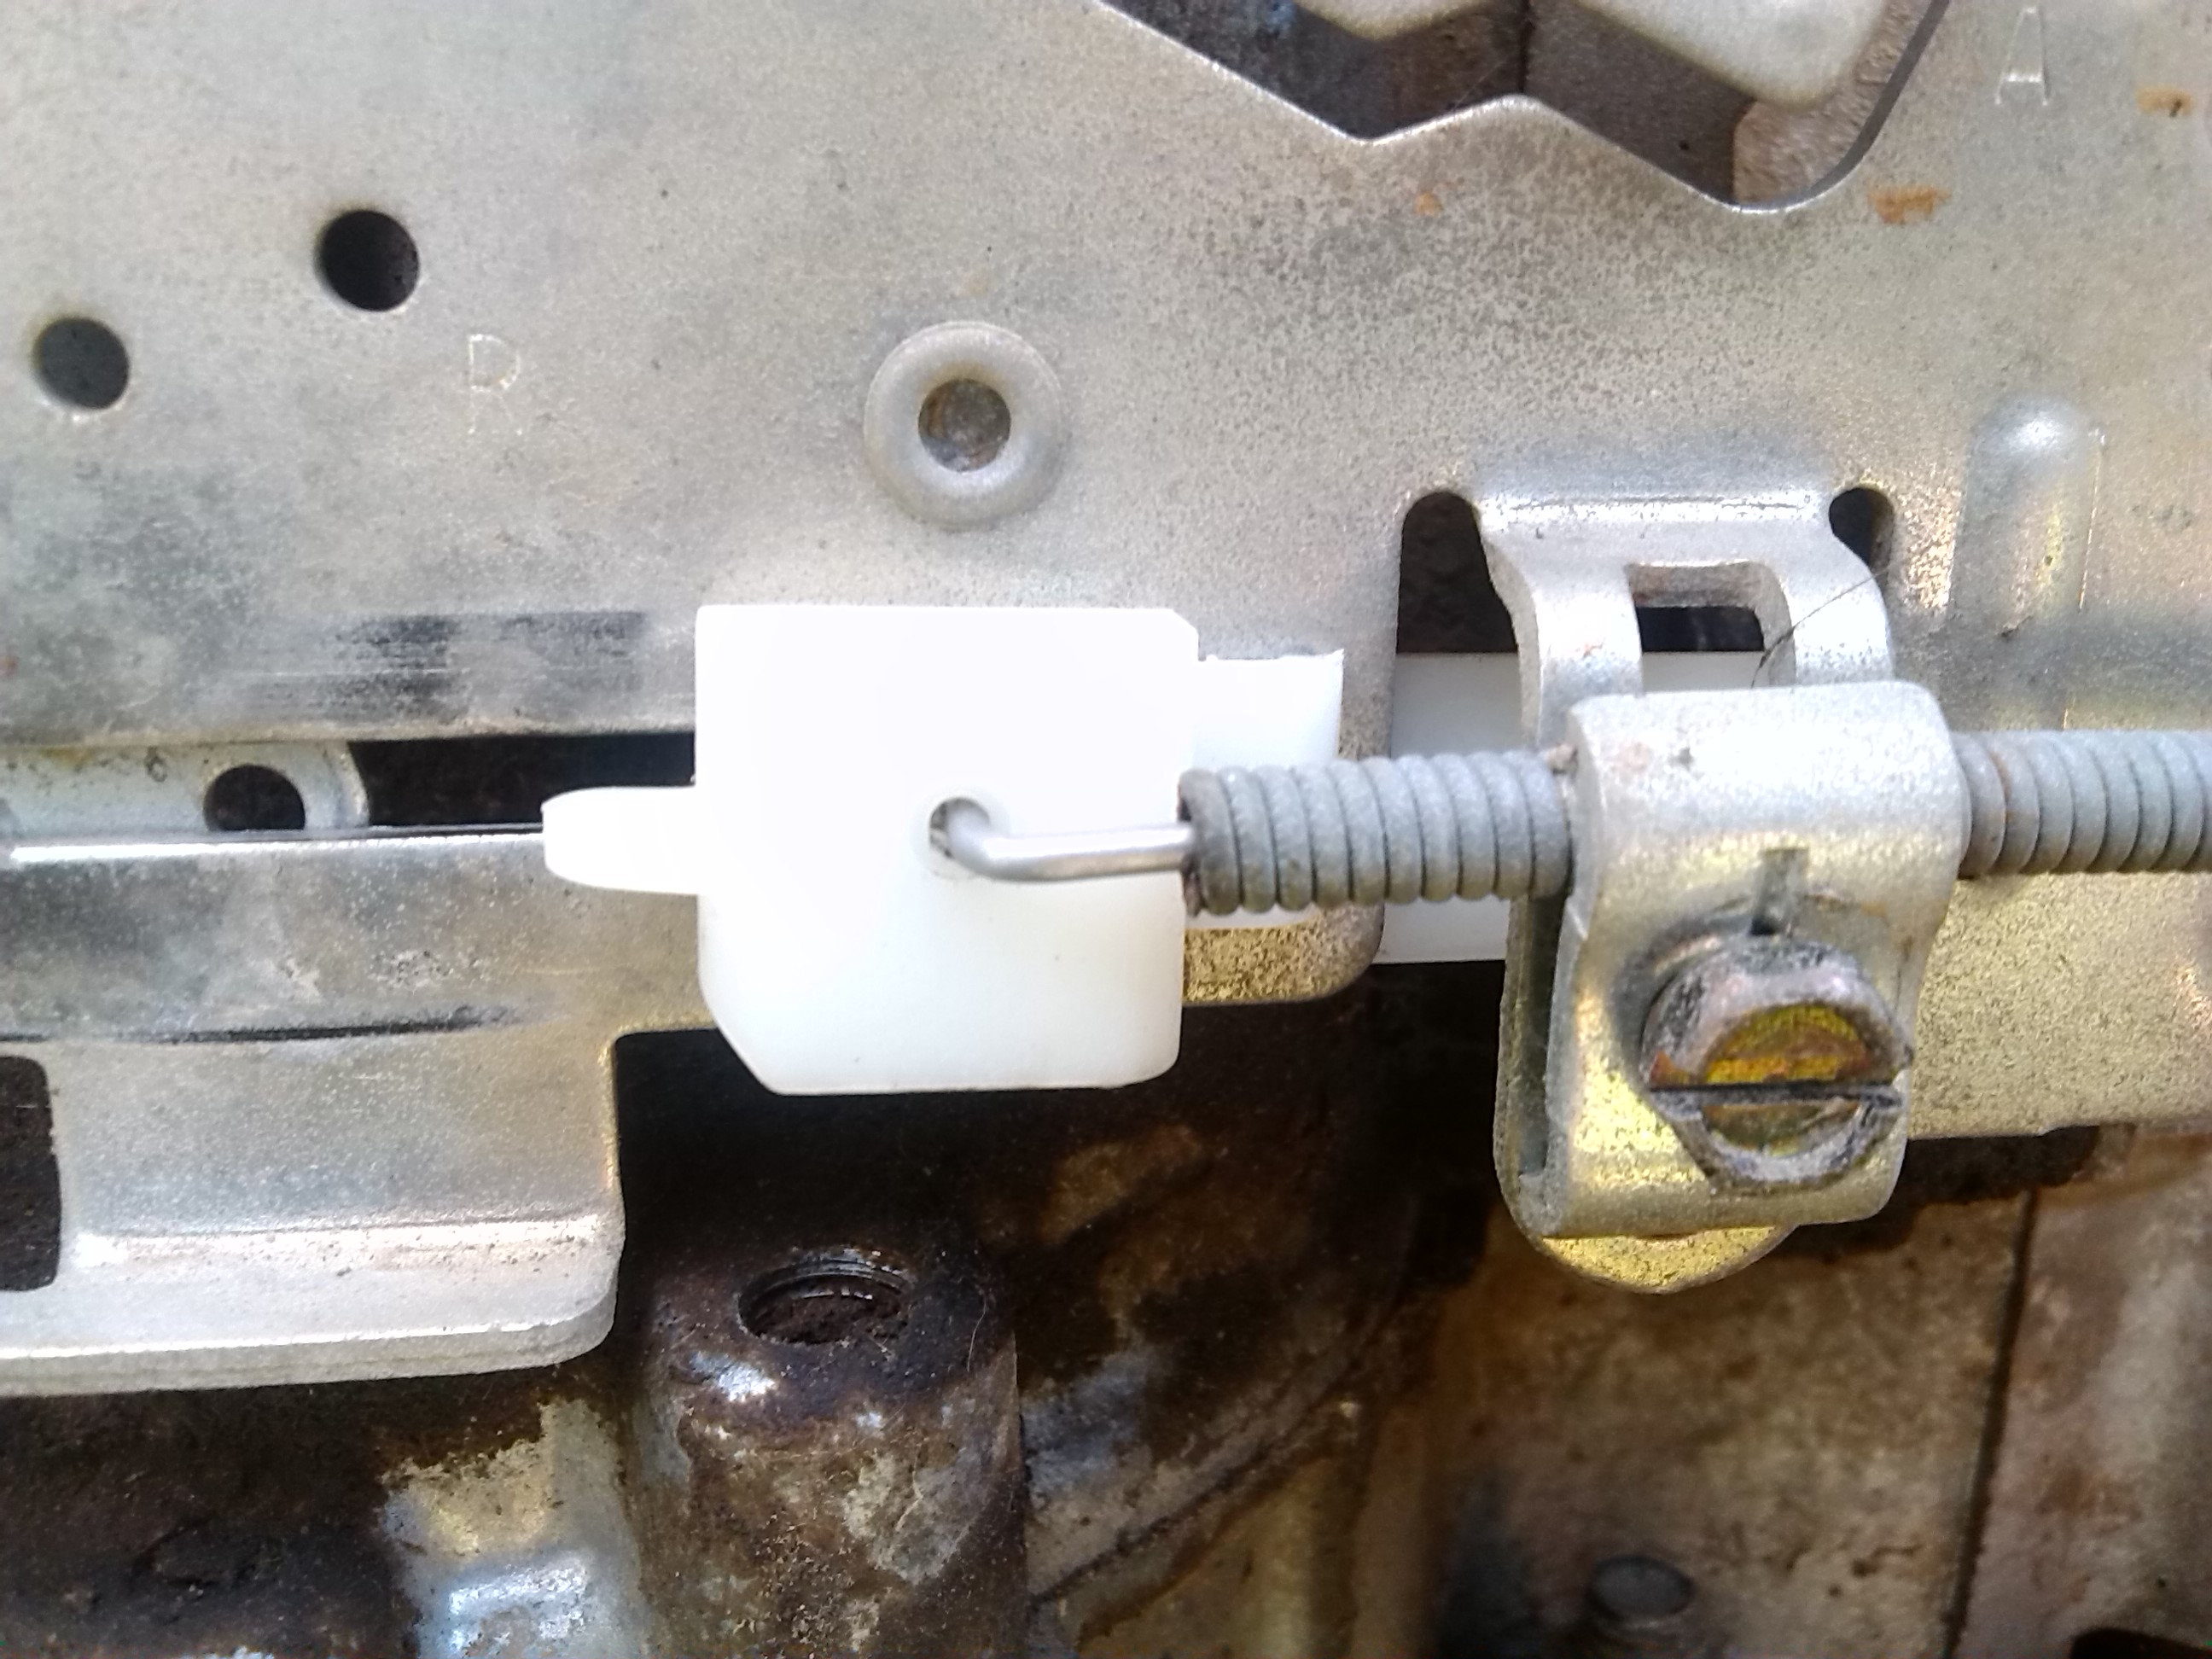 Ok I Got The Linkages Connected Correctly Hope Pictures In Briggs Stratton Engine Carburetor Air Cleaner Parts Model 460707 2014 06 25 213501 Img 202014